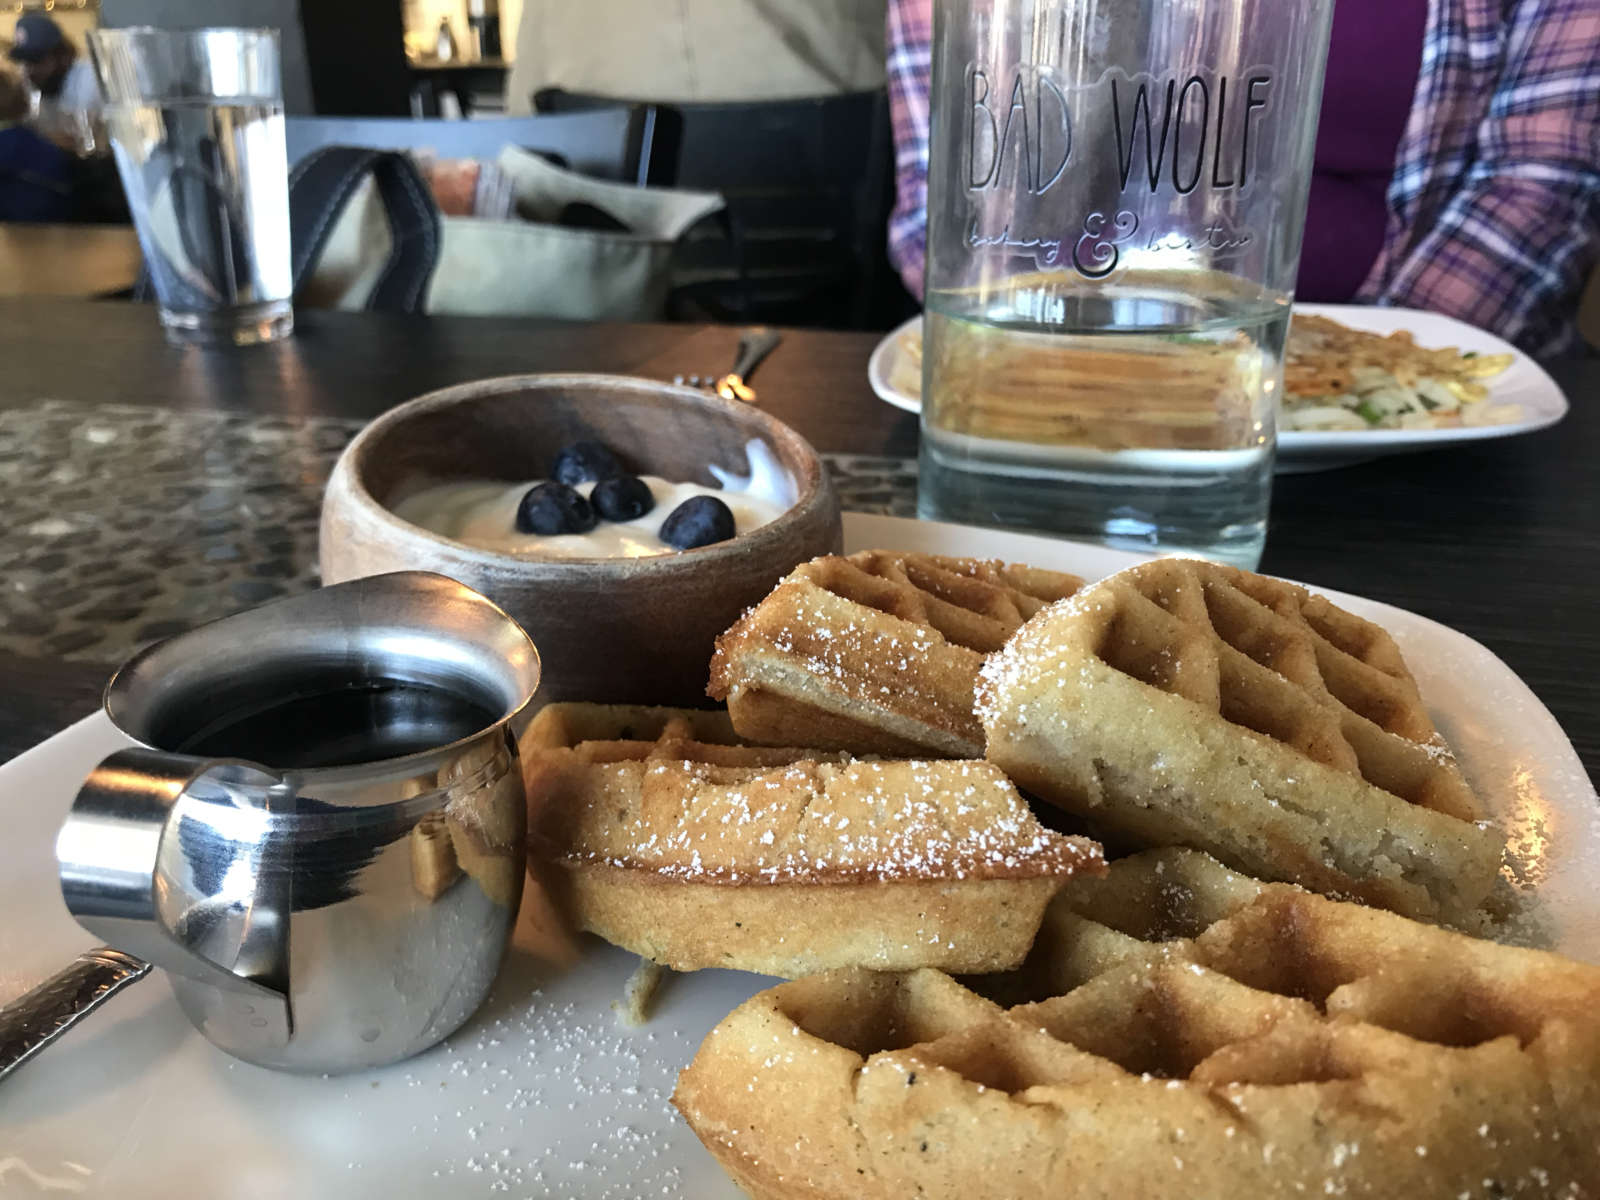 Waffles at Bad Wolf in Bend, Oregon